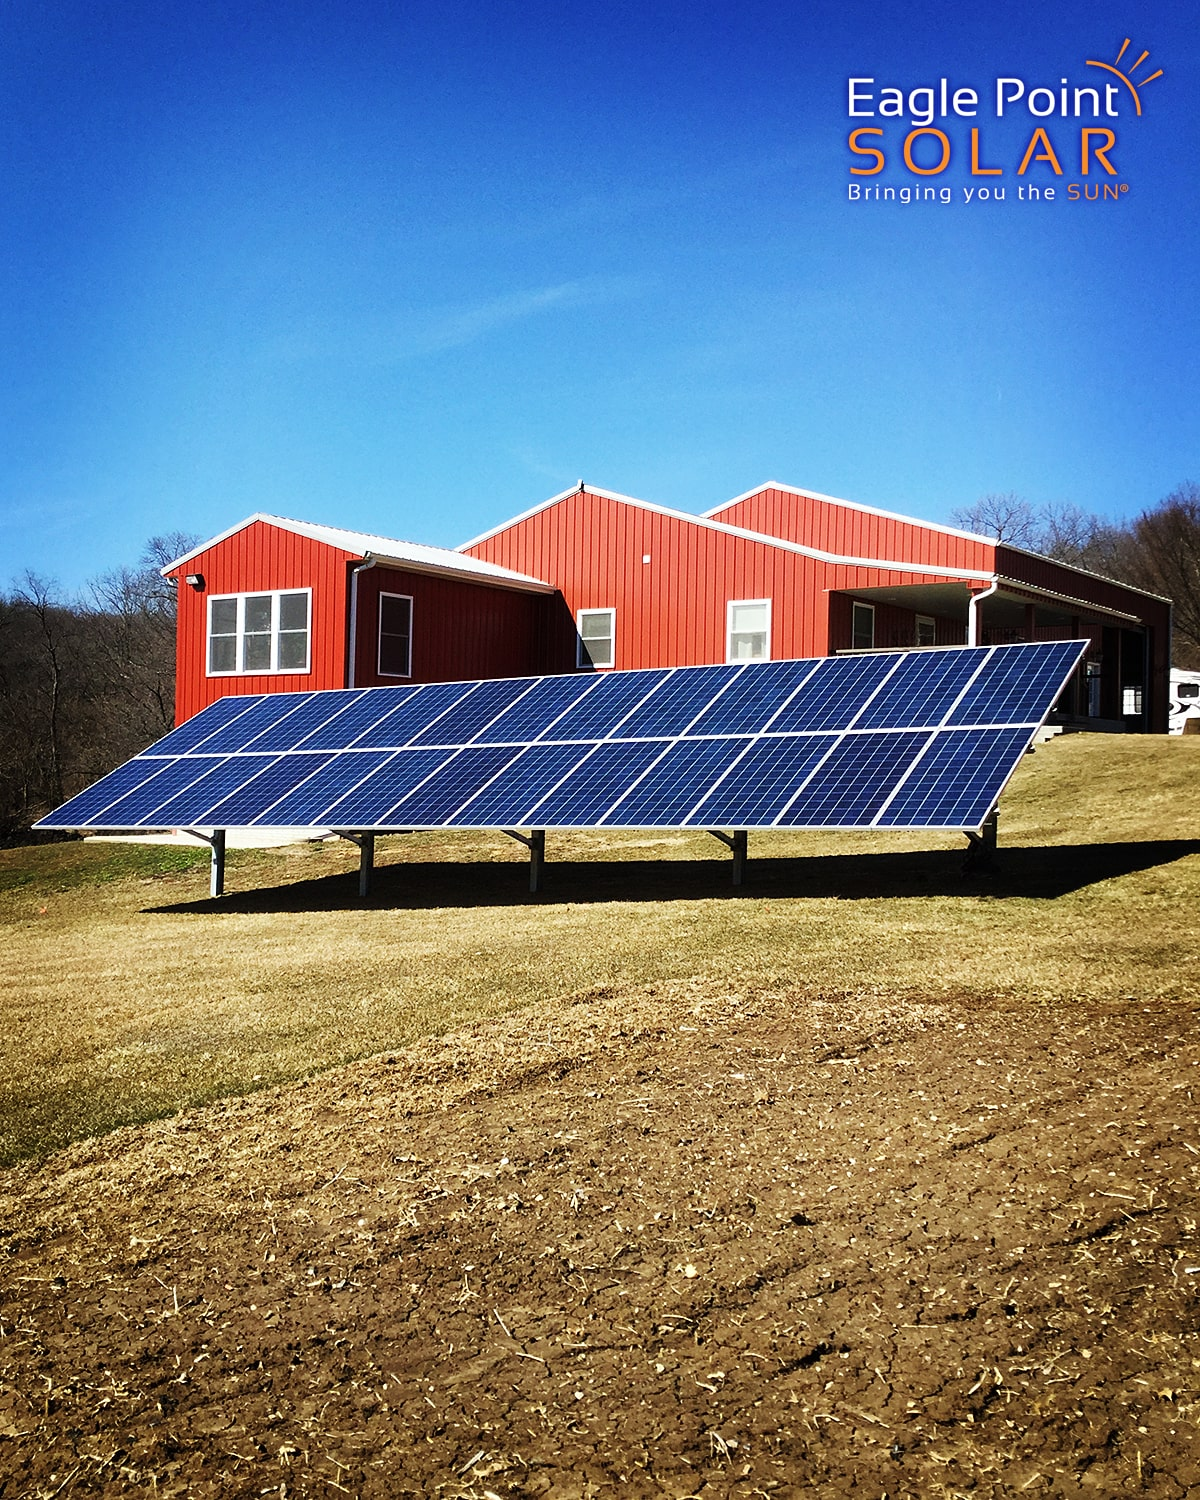 Photo of an agricultural ground mounted solar array